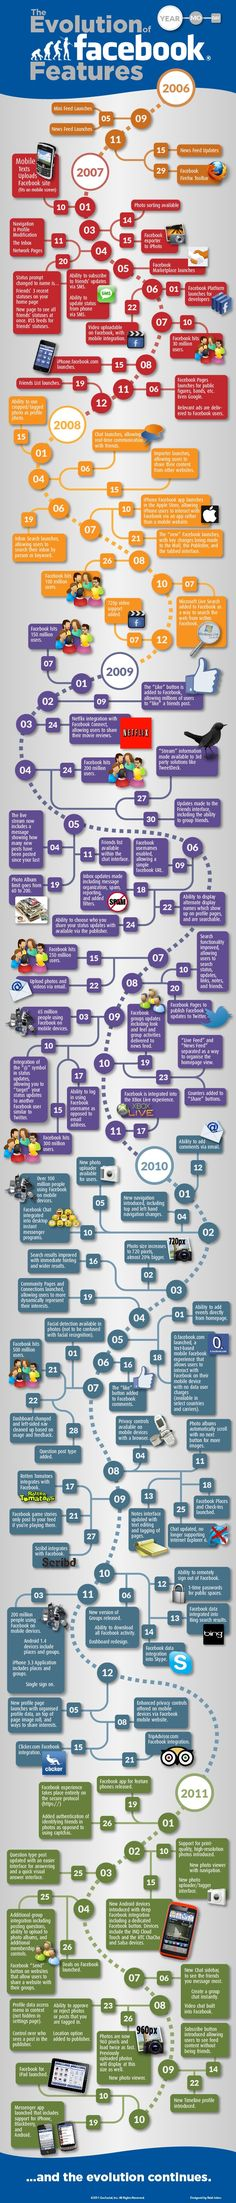 Facebook announces its IPO resulting in all sorts of info being thrown at us, I thought I would throw a bit more!